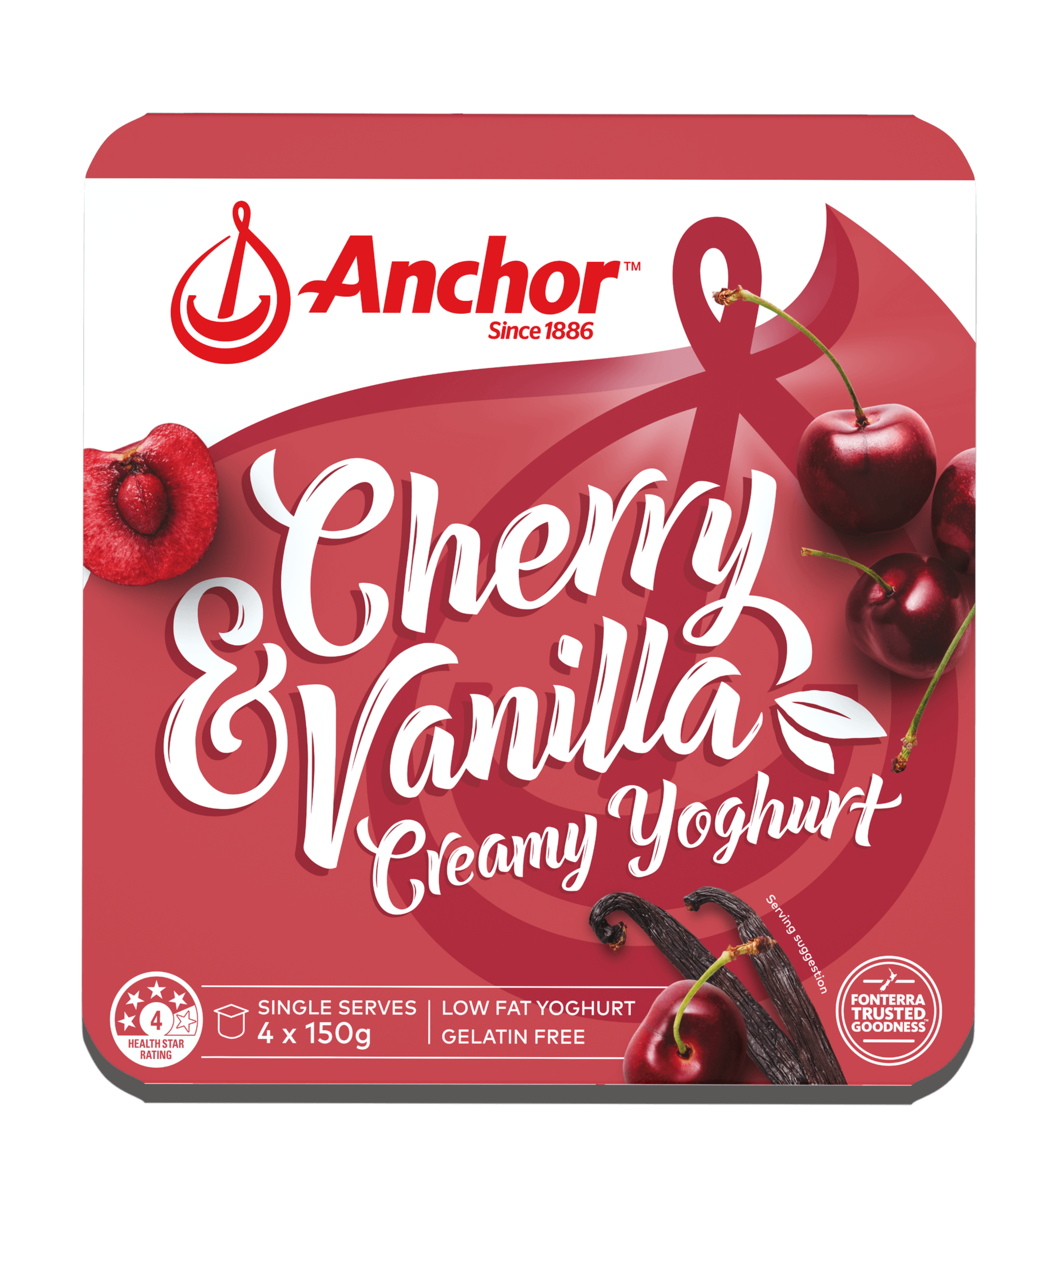 Anchor Cherry Vanilla Yoghurt 4 x 150g pack